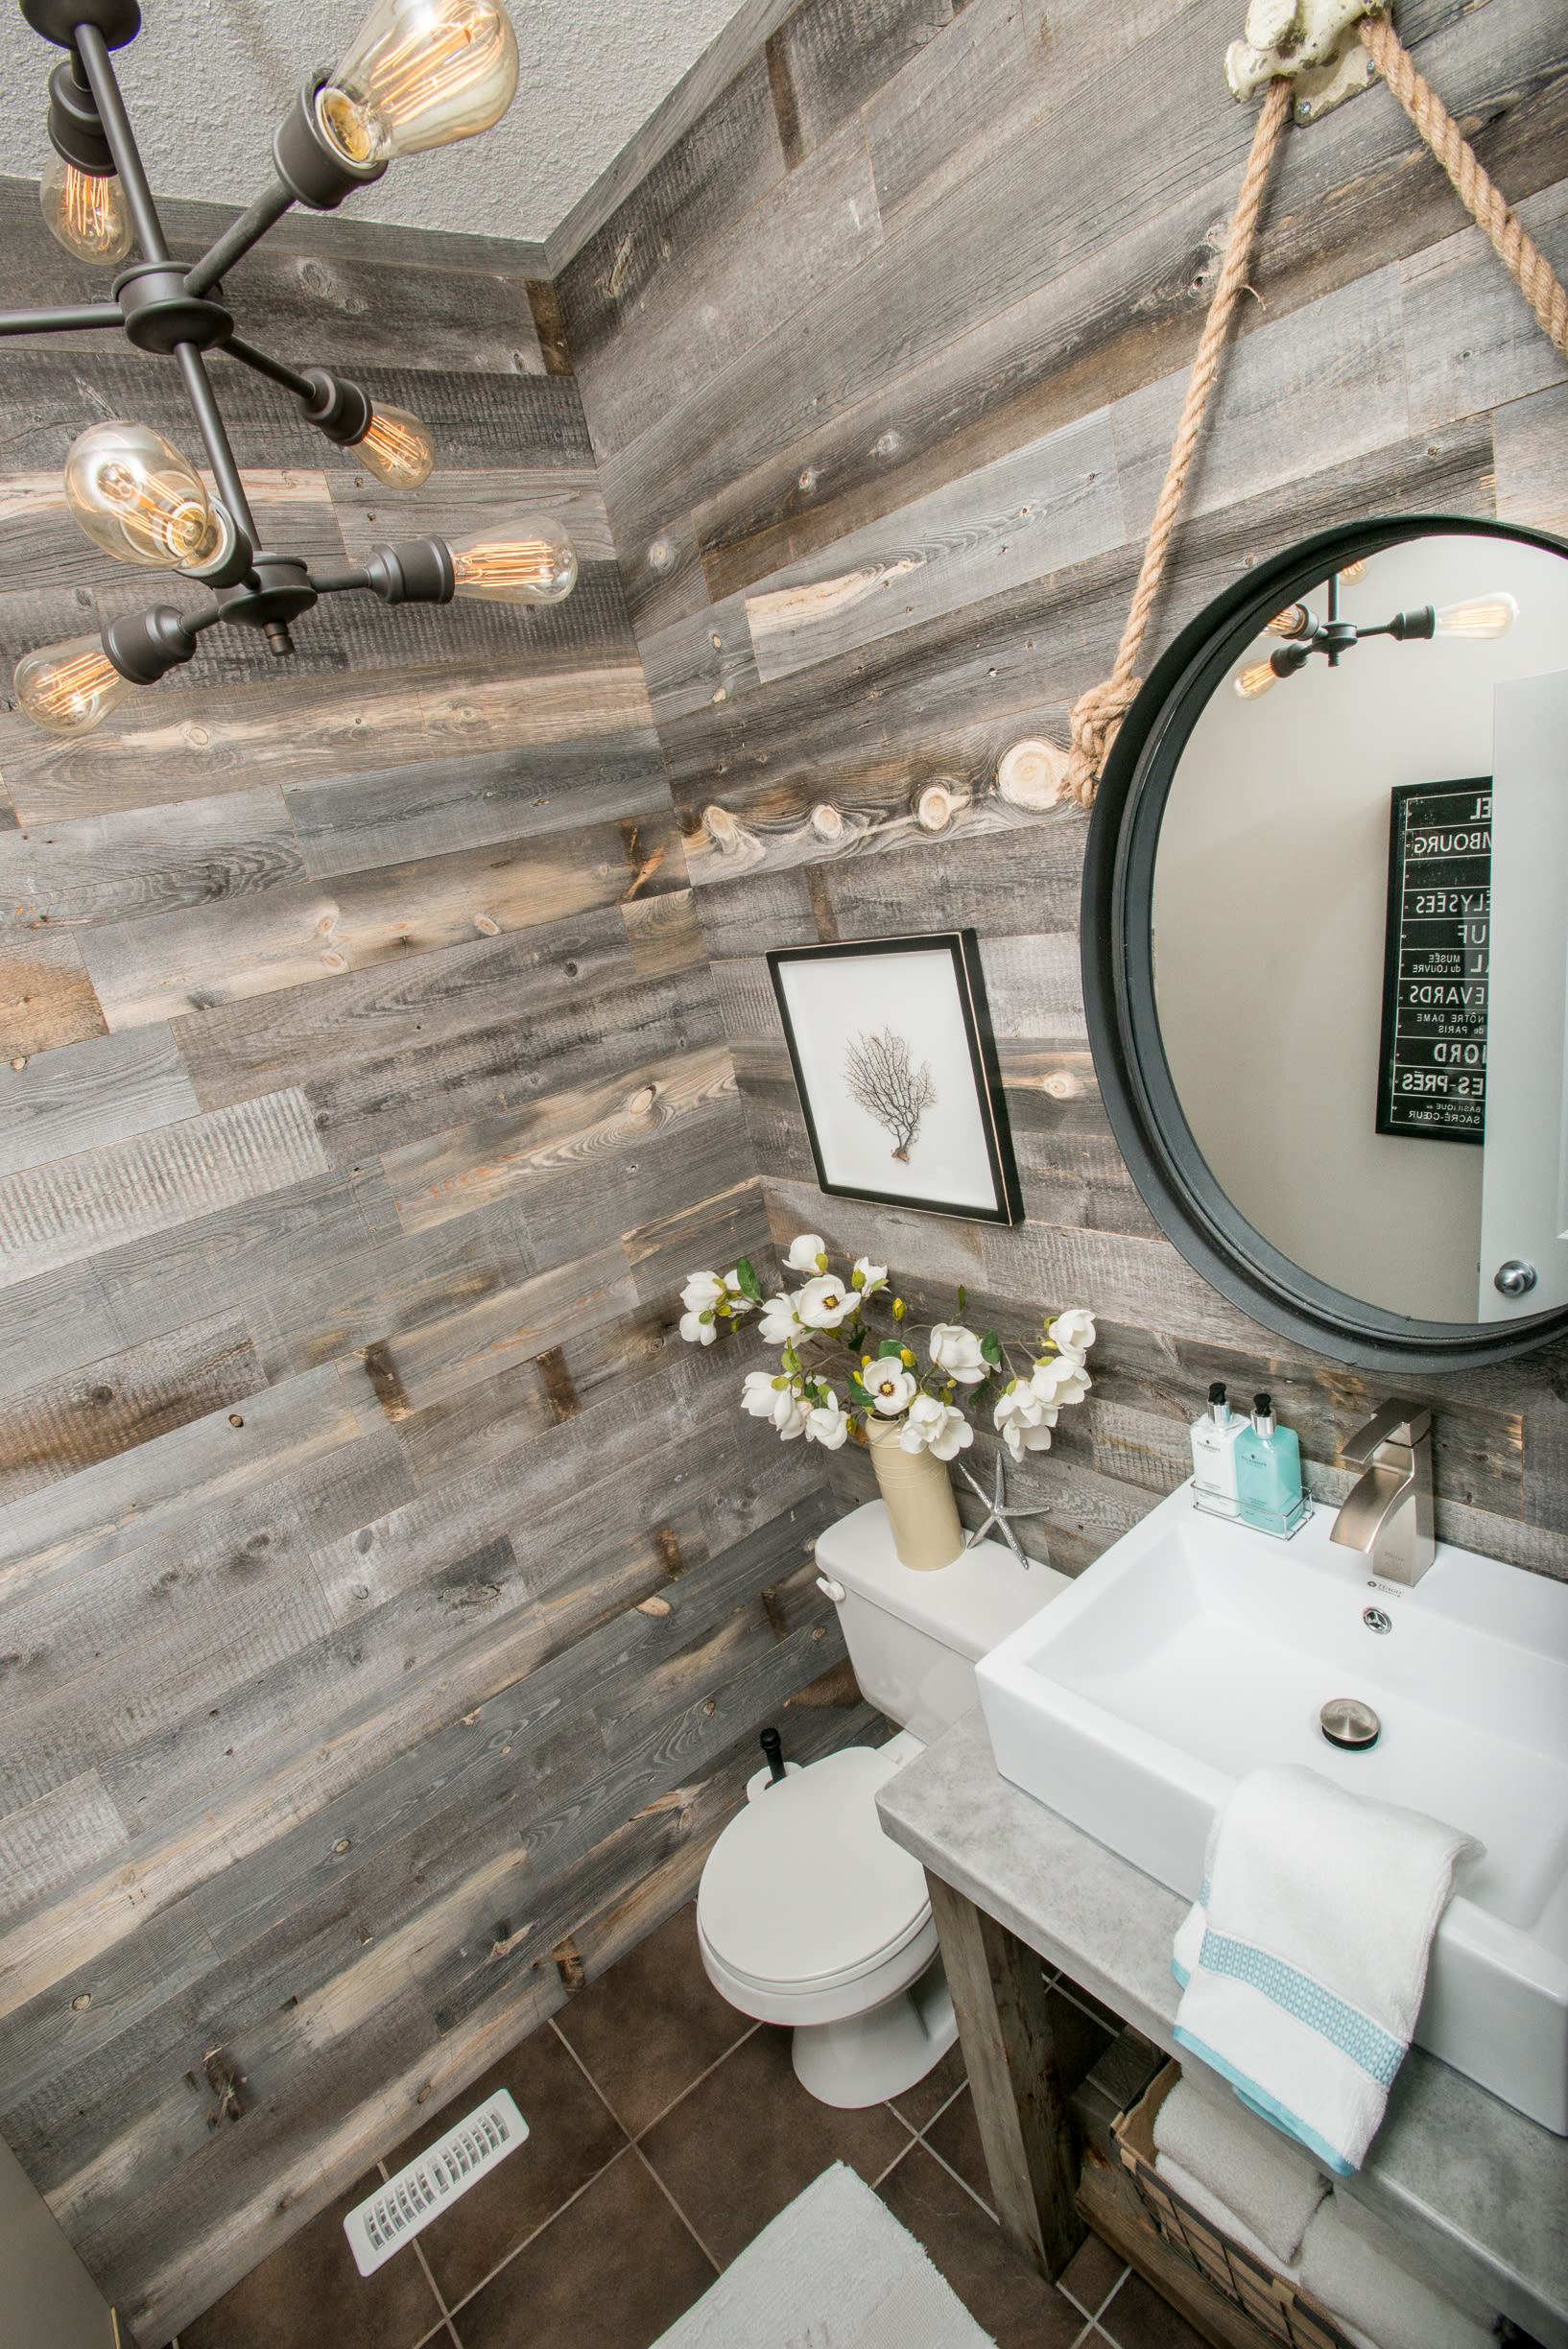 Reclaimed barnwood accent walls made with Stikwood peel and stick reclaimed wood planks in a bathroom angled shot.